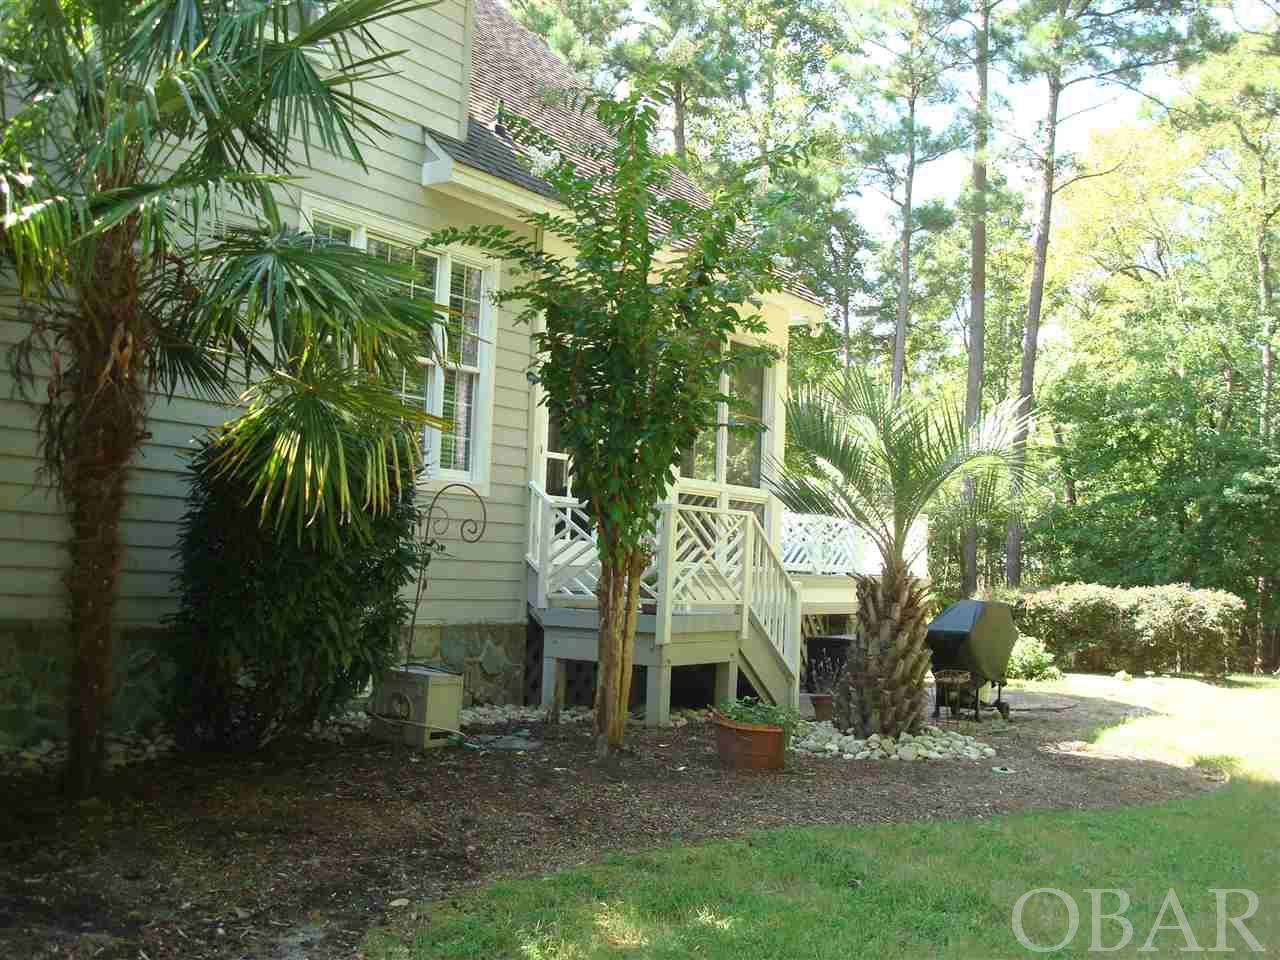 101 Forbes Court,Powells Point,NC 27966,3 Bedrooms Bedrooms,2 BathroomsBathrooms,Residential,Forbes Court,97884